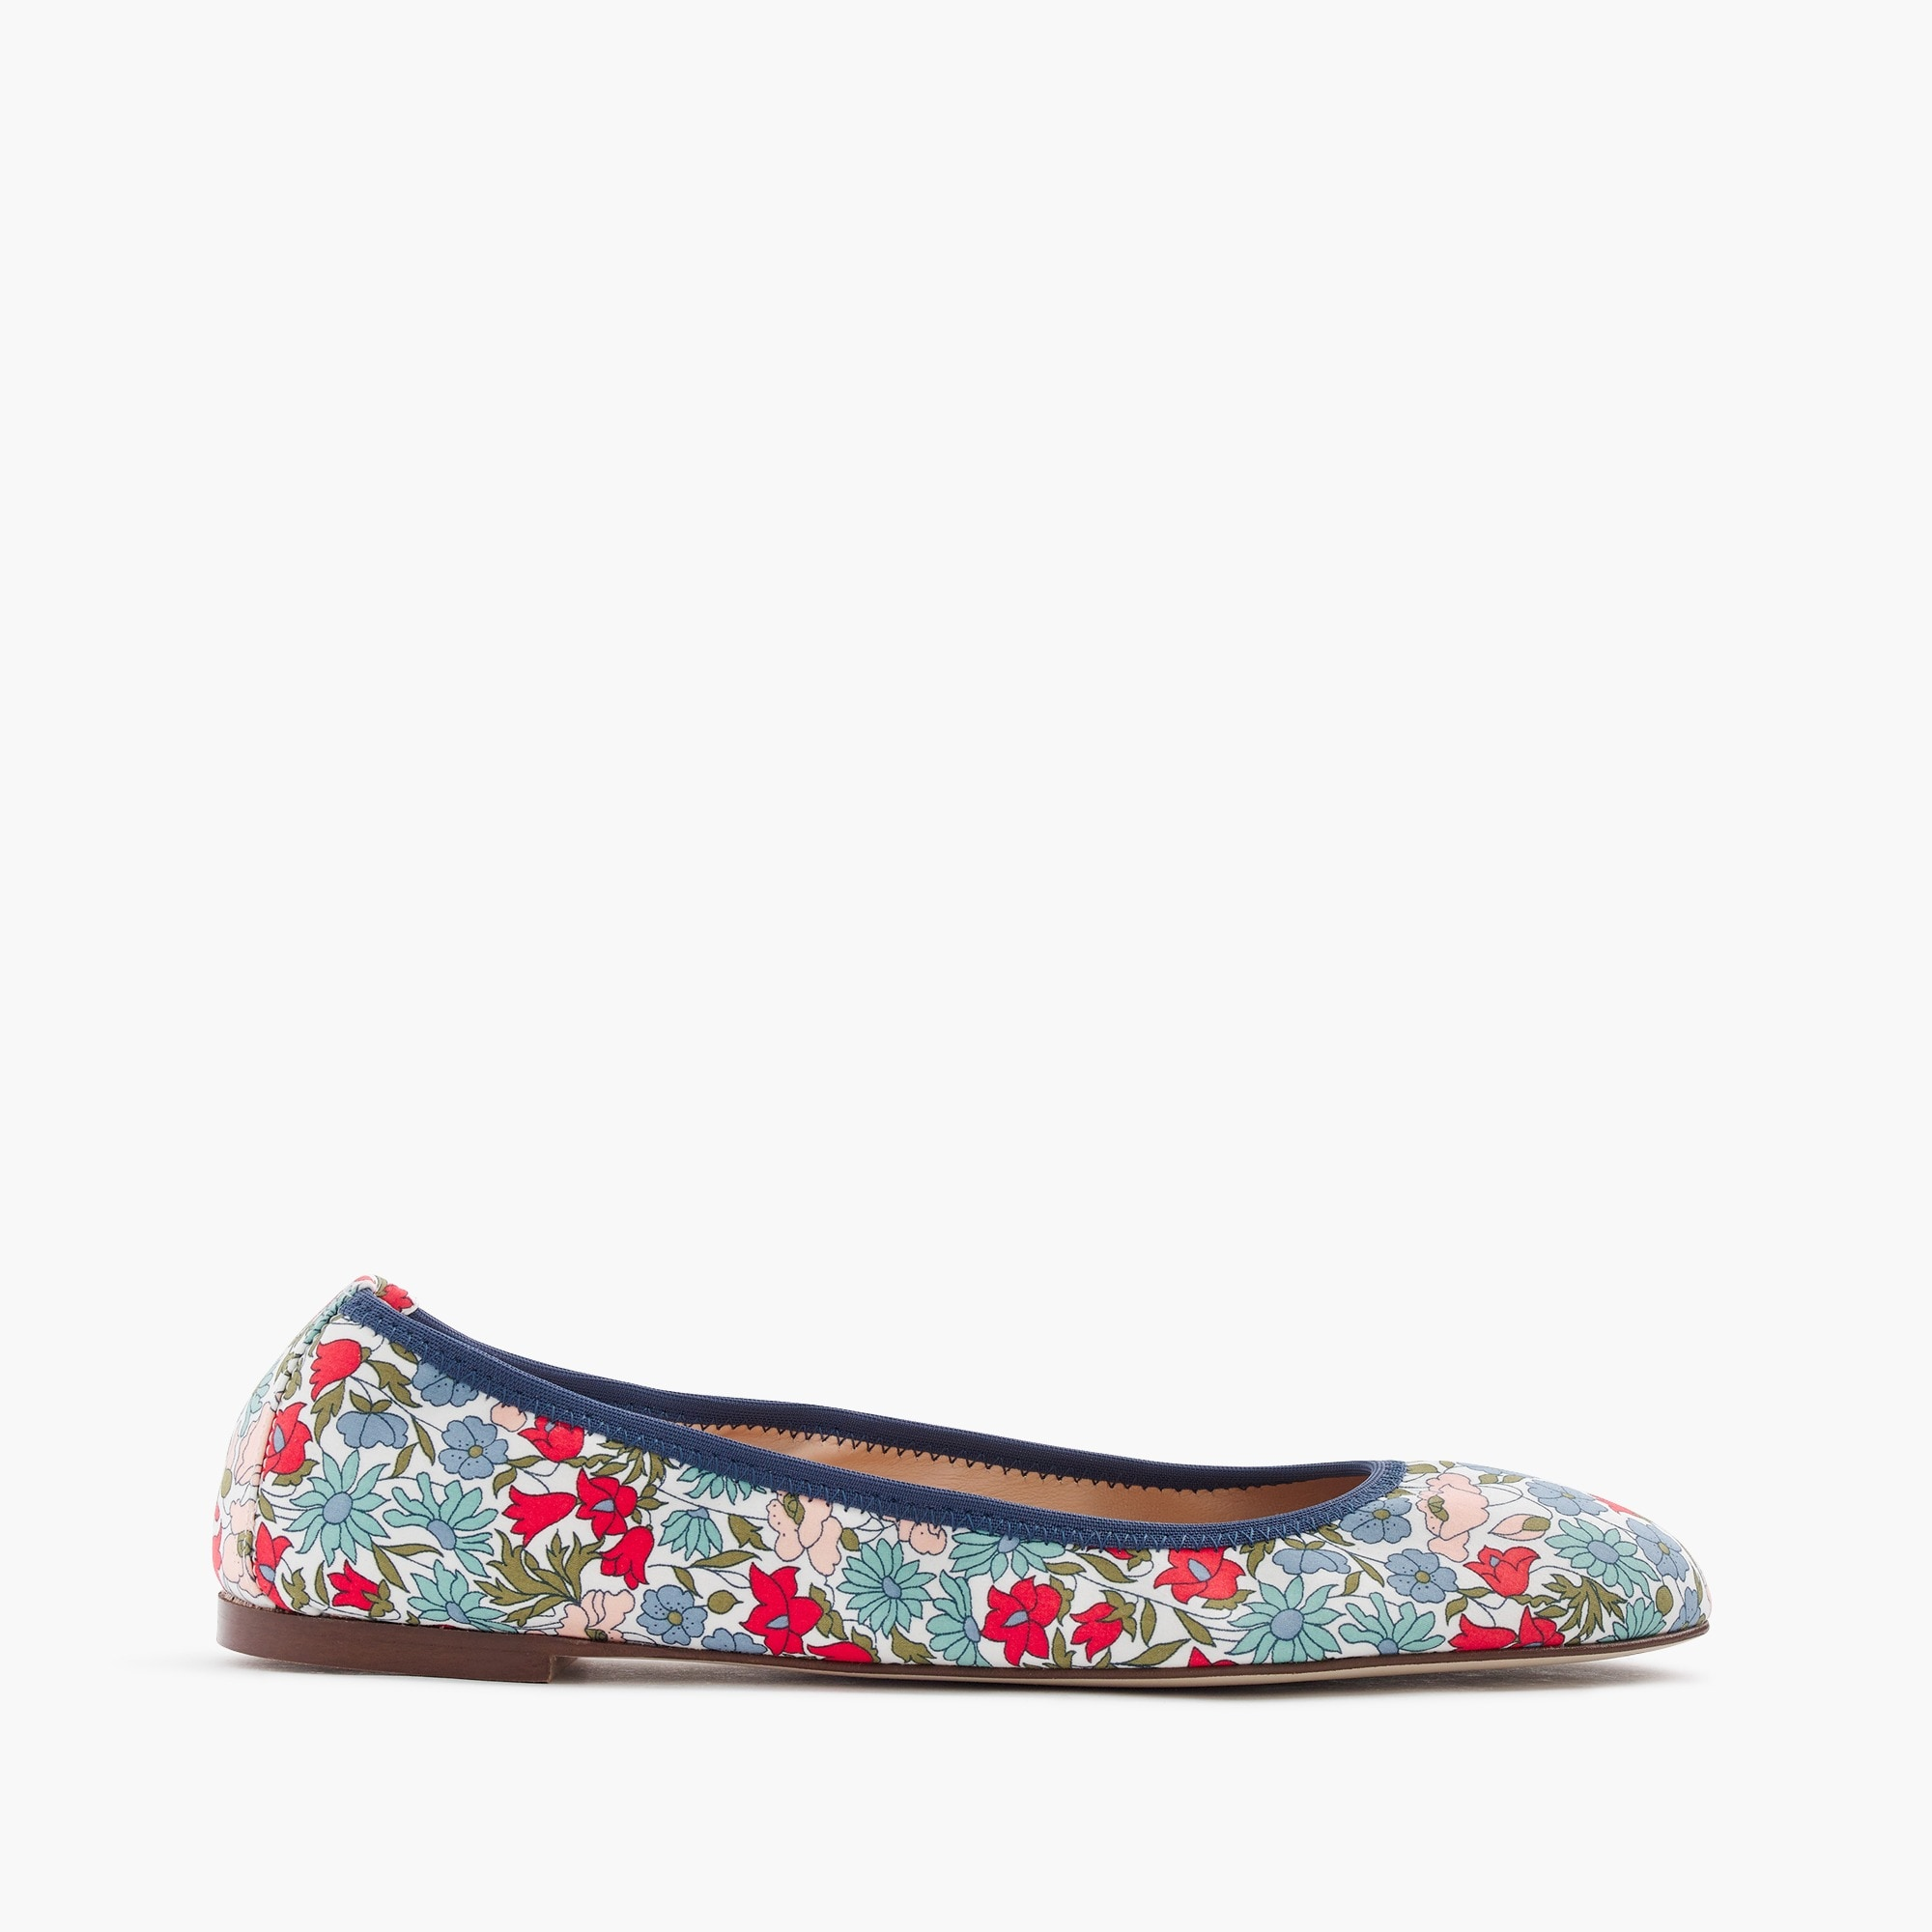 Image 1 for Lea ballet flats in Liberty® poppy and daisy floral